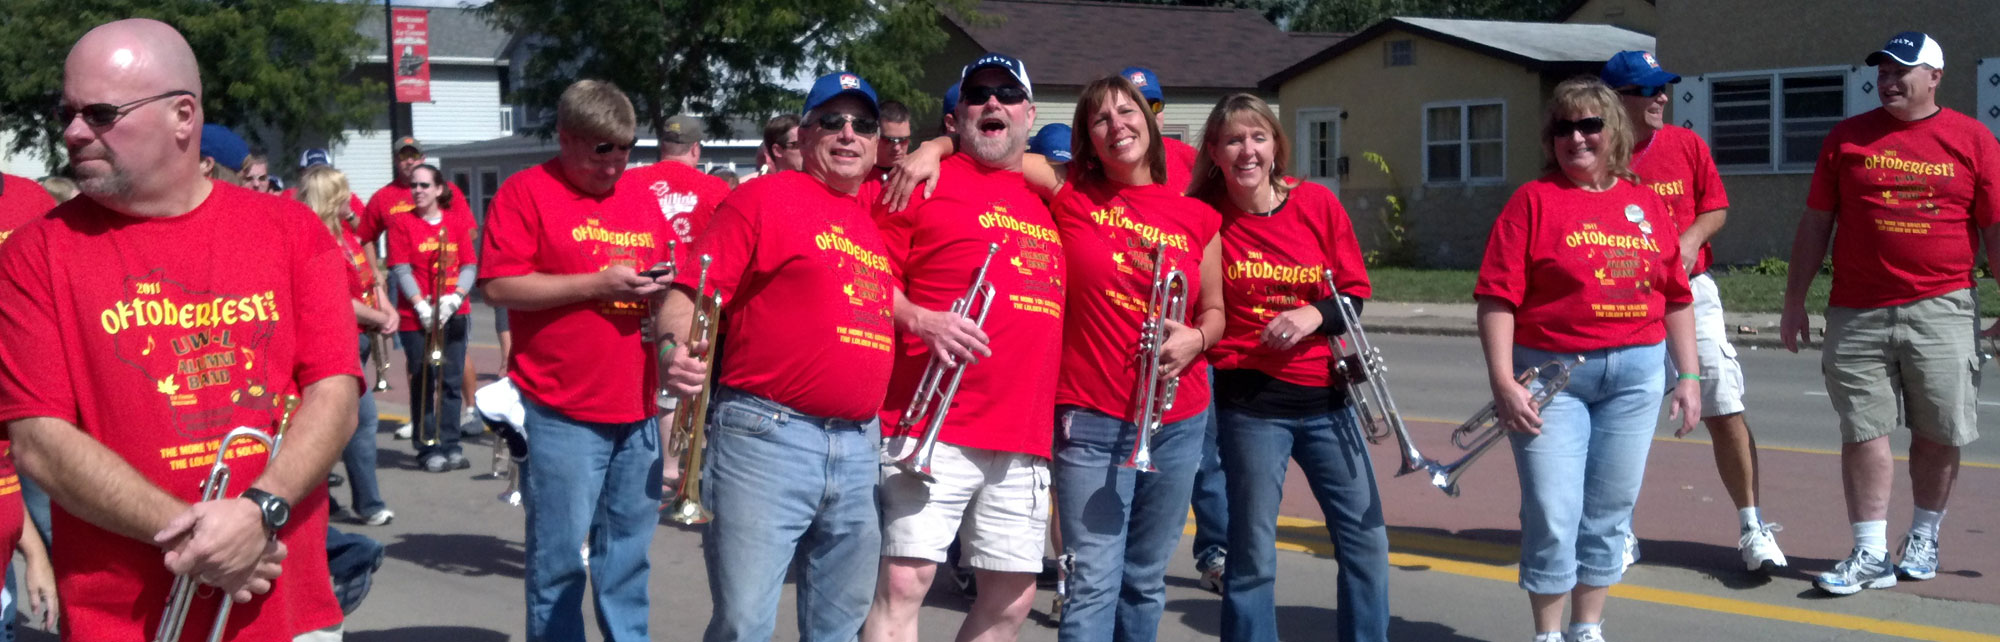 Members of University of Wisconsin - La Crosse Alumni Band